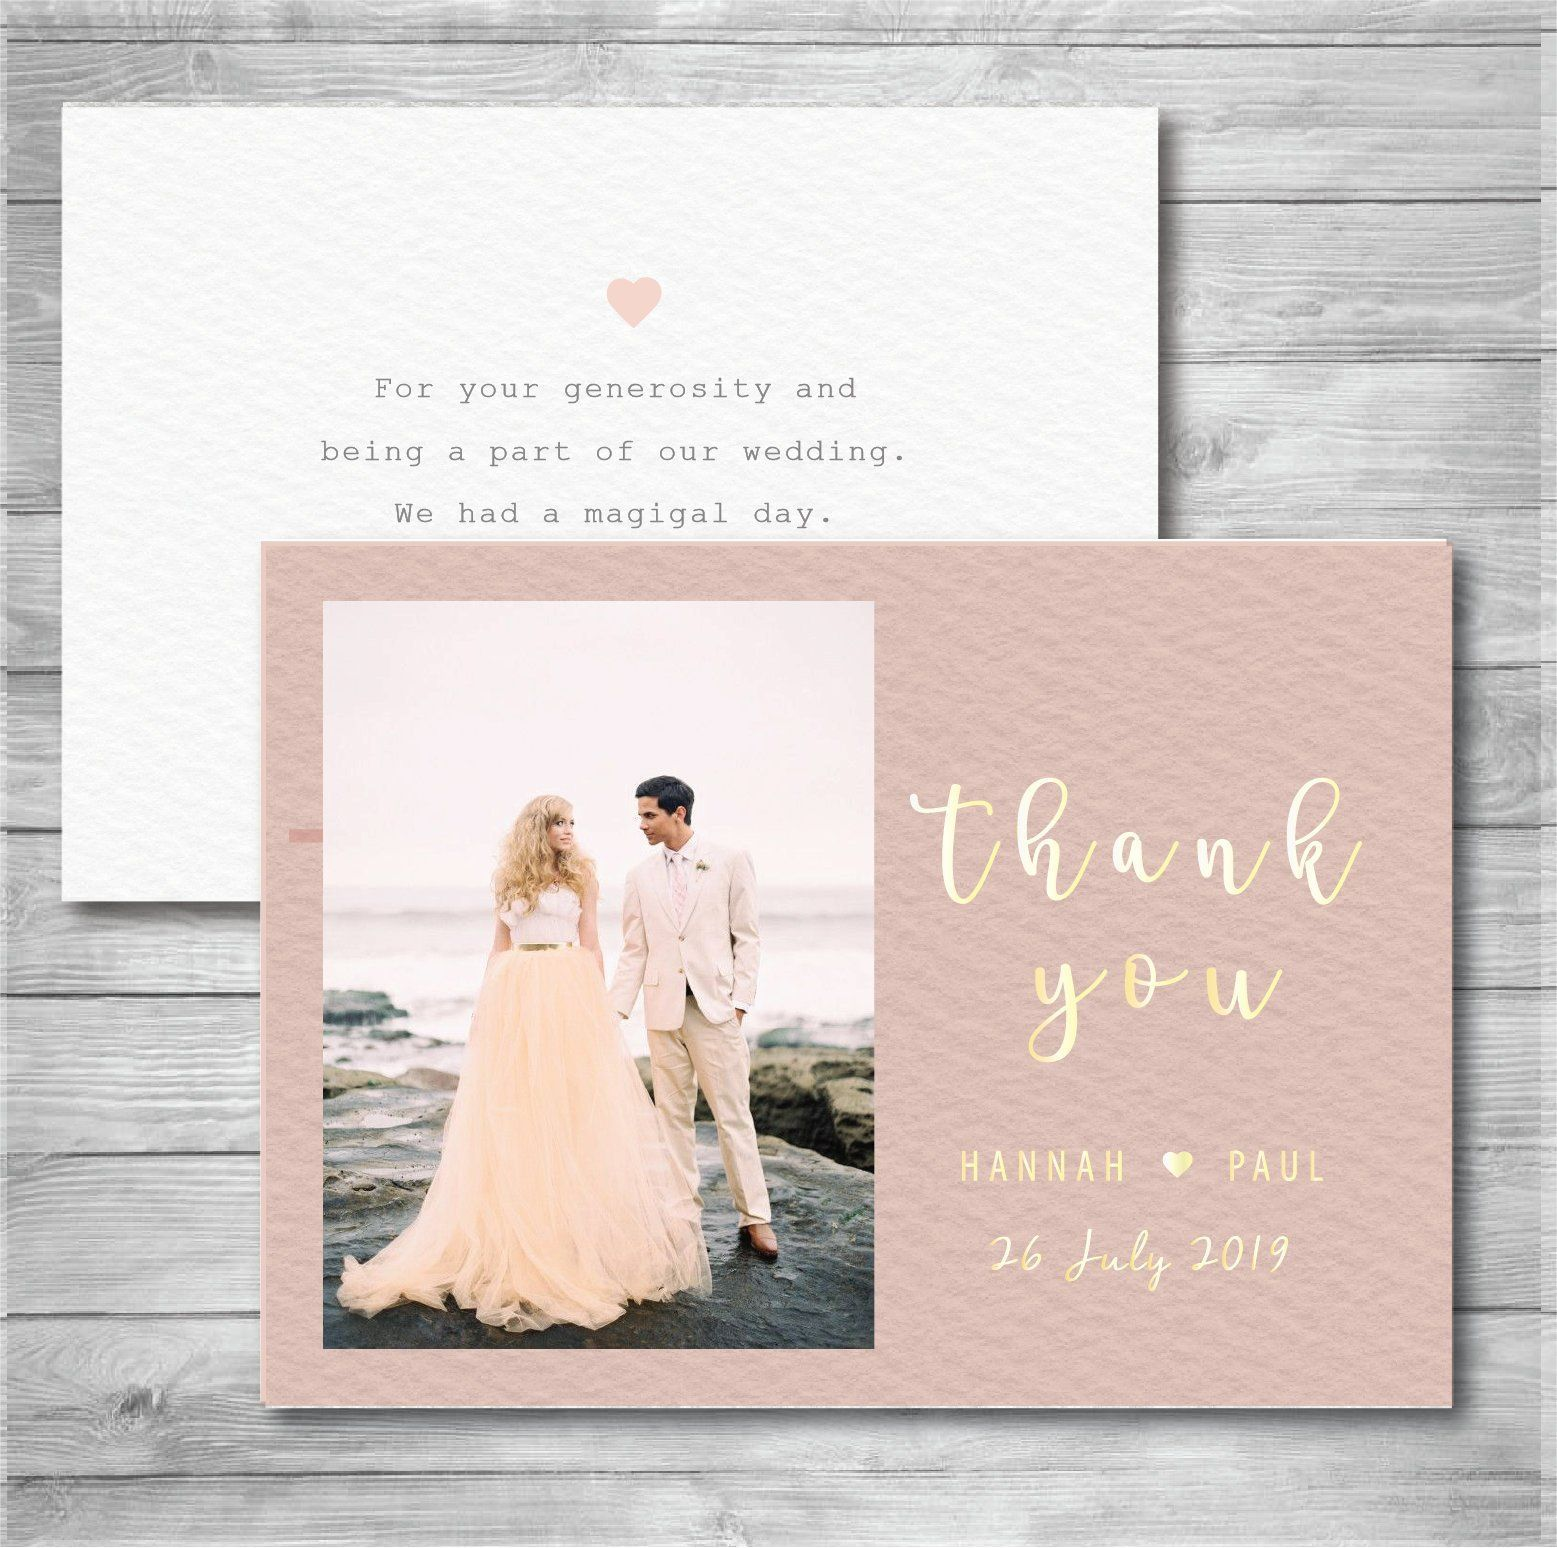 Wedding Thank You Cards With Photo Wedding Photo Thank You Etsy Wedding Thank You Cards Wedding Thanks Wedding Cards